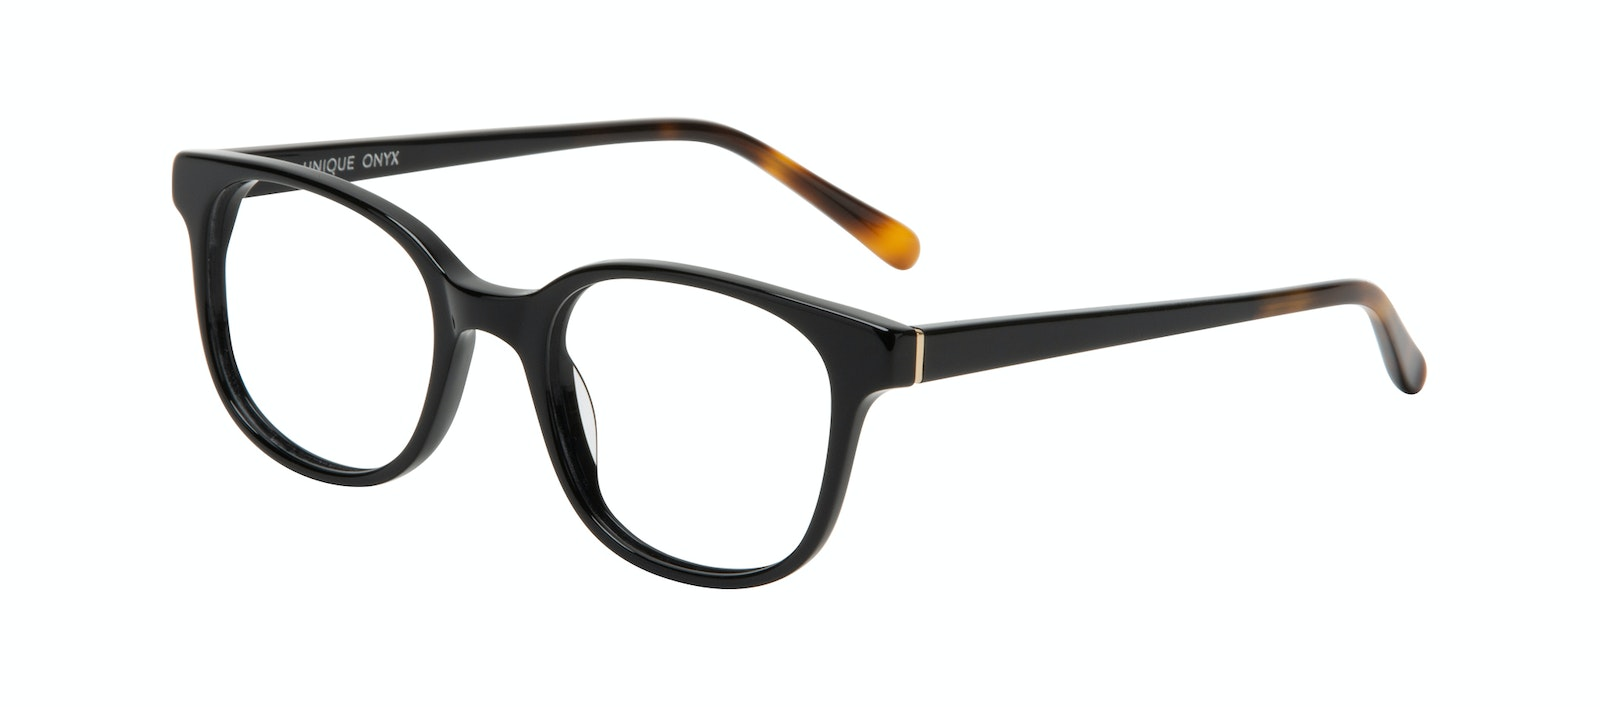 Affordable Fashion Glasses Square Eyeglasses Women Unique Onyx Tilt